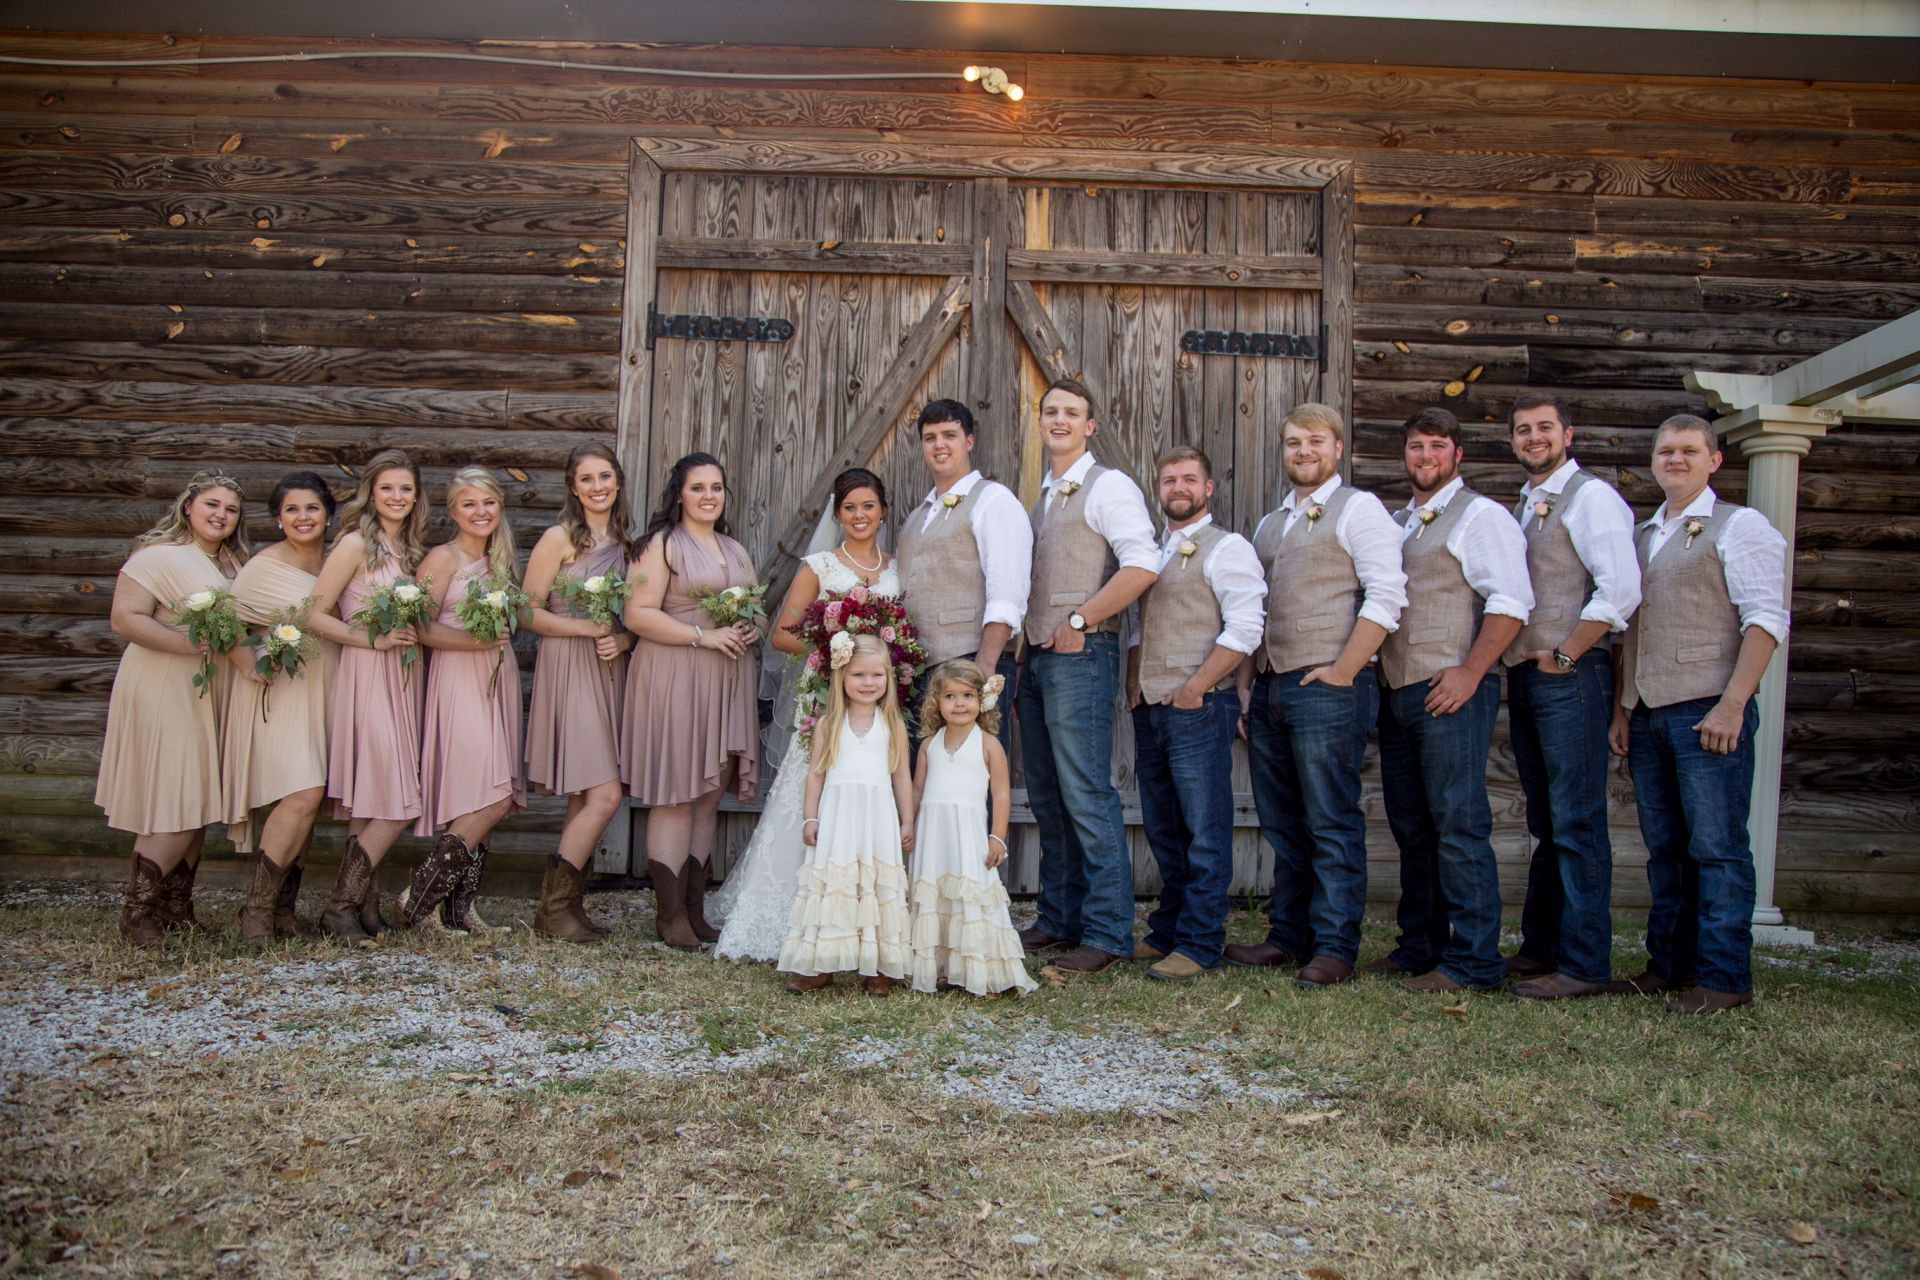 An image of a bridal party posing for a picture in front of a barn